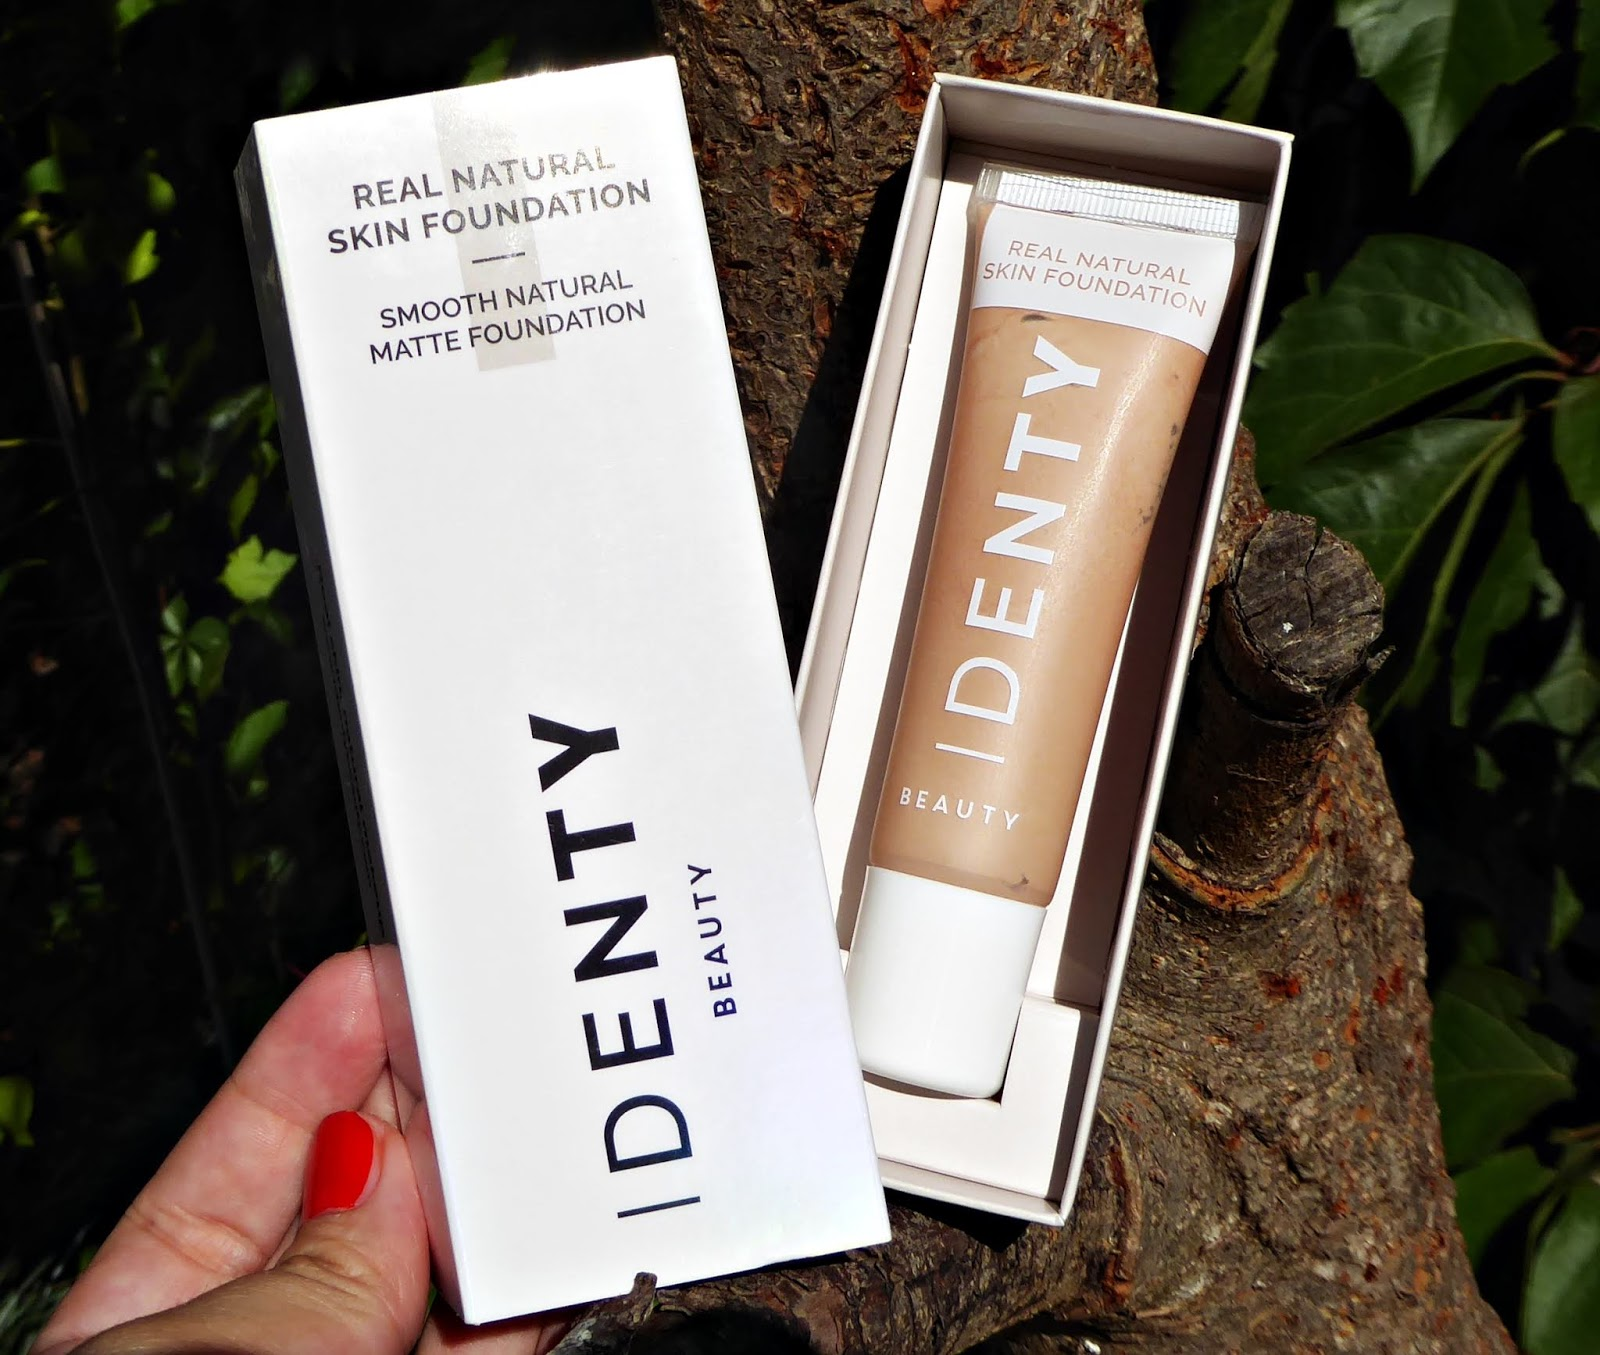 Real Natural Skin Foundation de Identy Beauty, un maquillaje vegano de larga duración